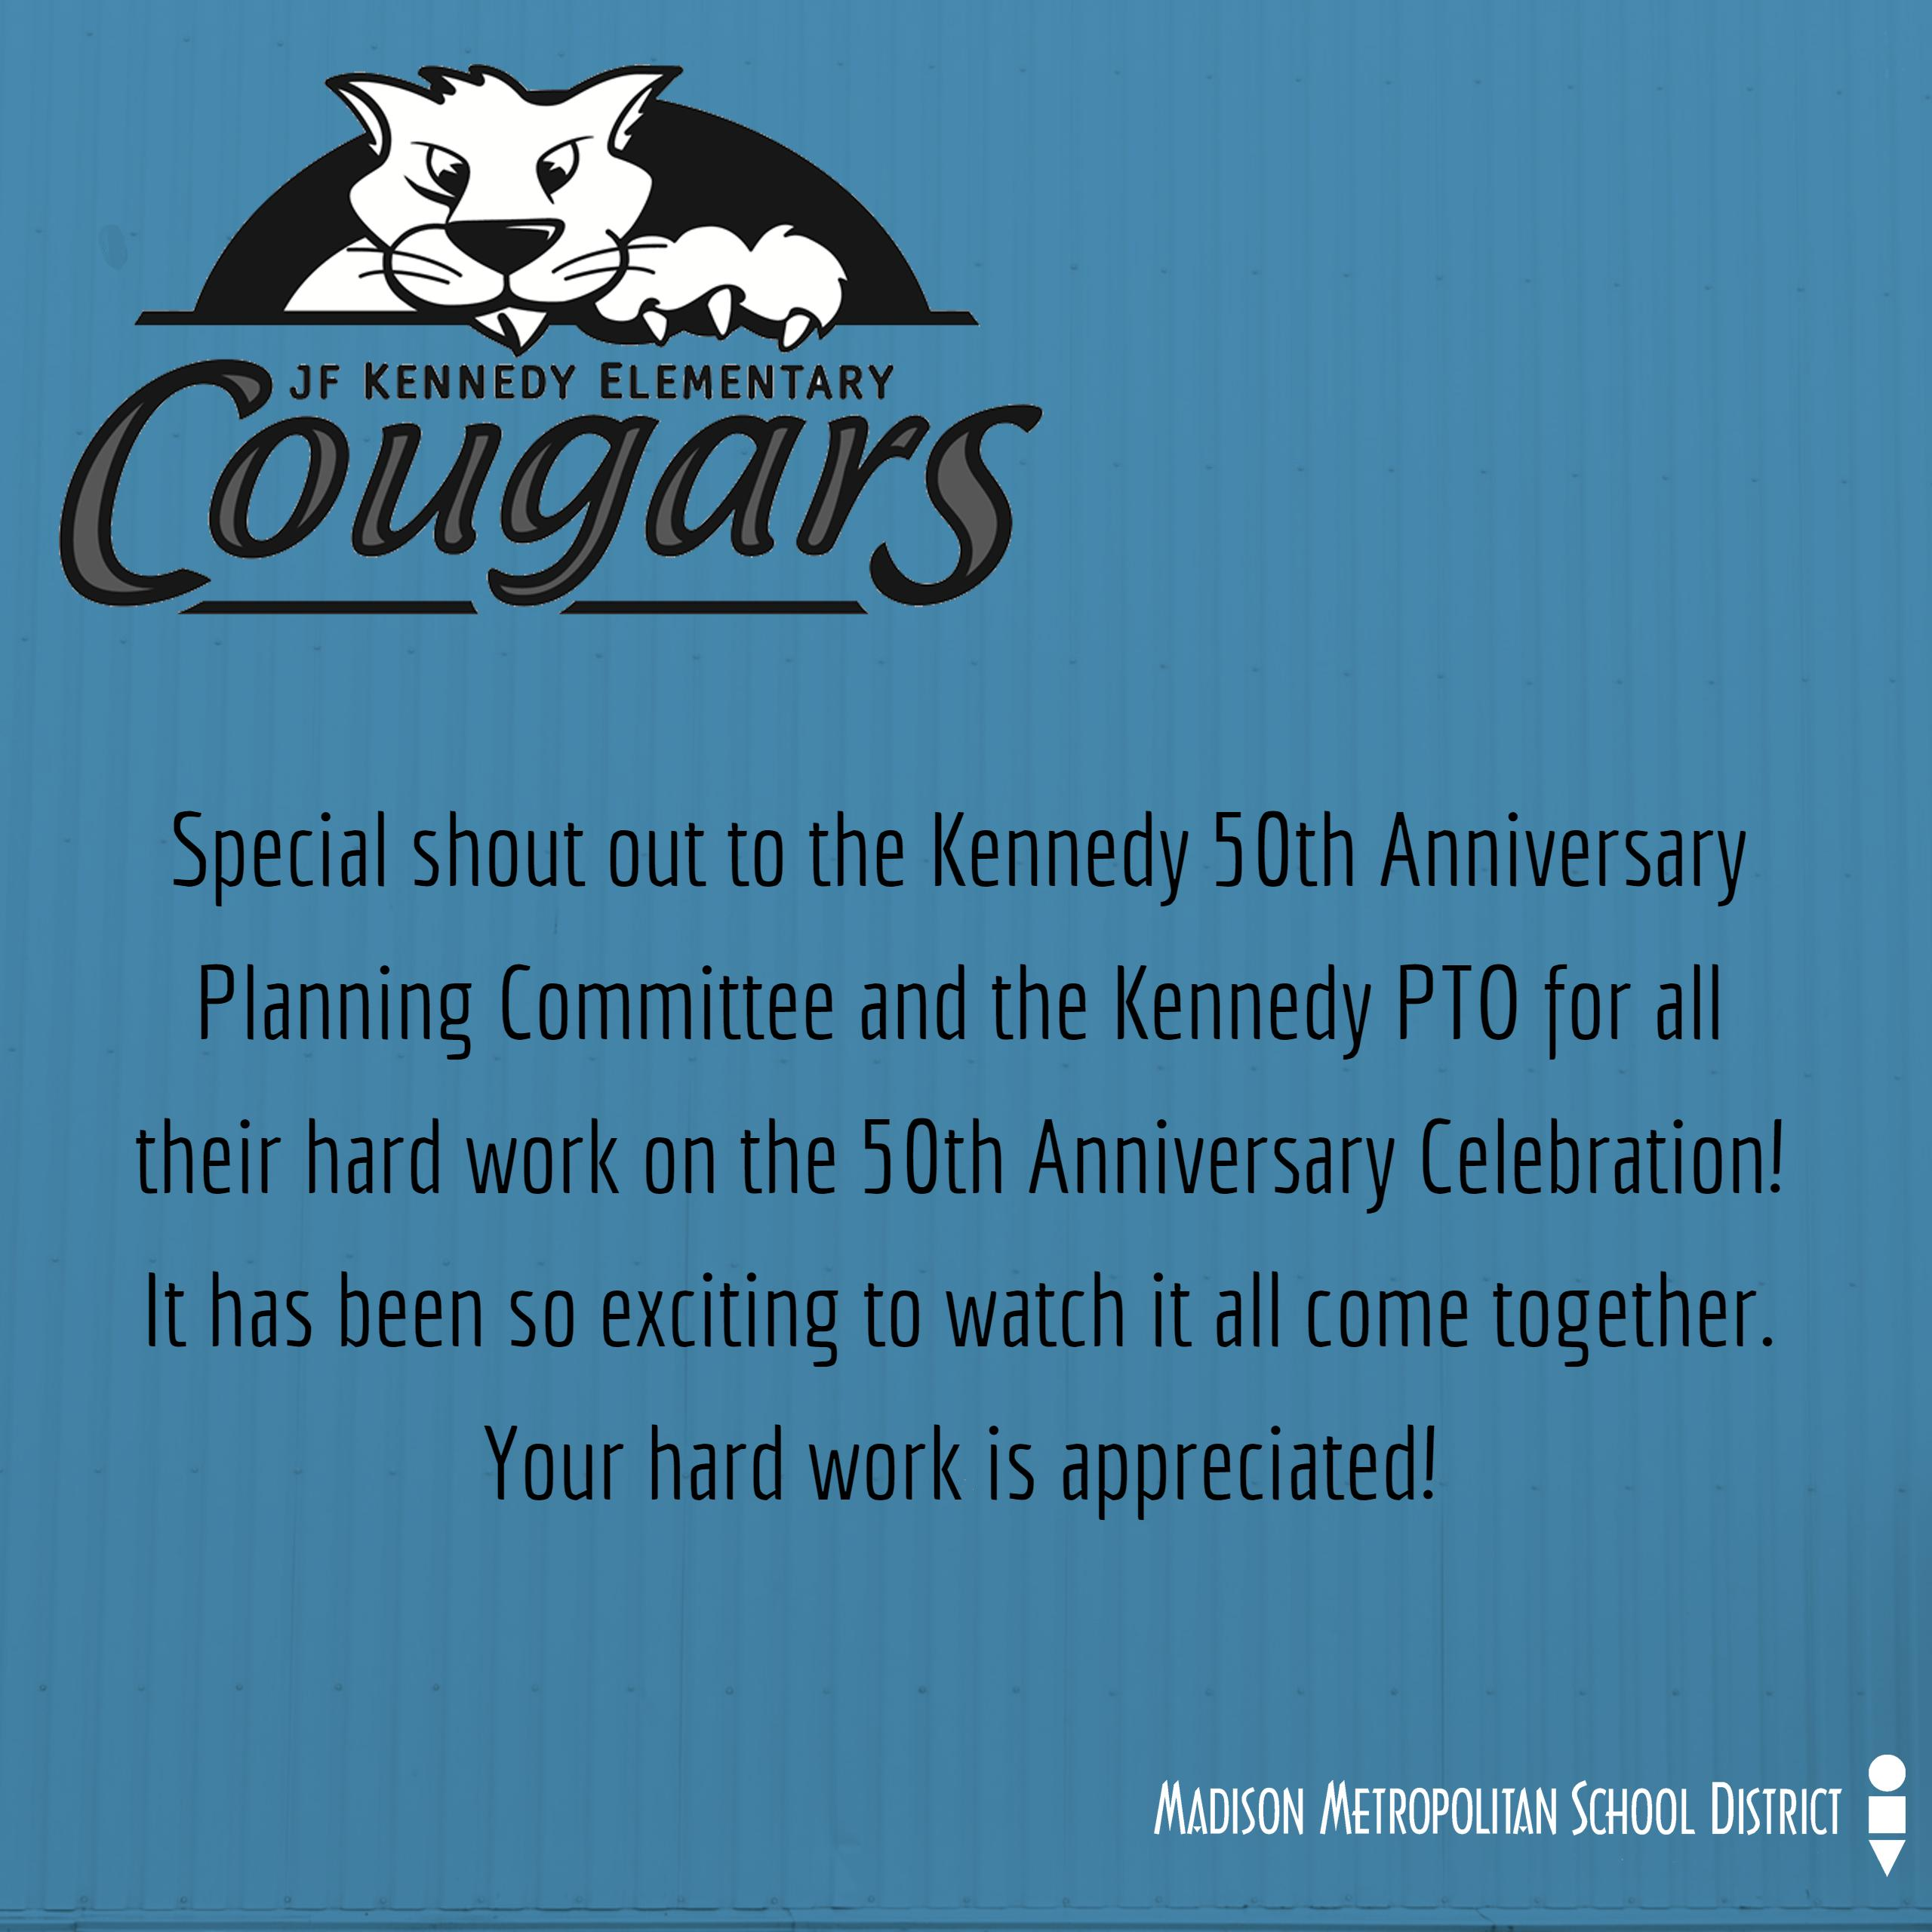 Special shout out to the kennedy 50th anniversary planning committee and the Kennedy PTO for all their hard work on the 50th anniversary celbration!  It has been so exciting to watch it all come together.  Your hard work is appreciated!